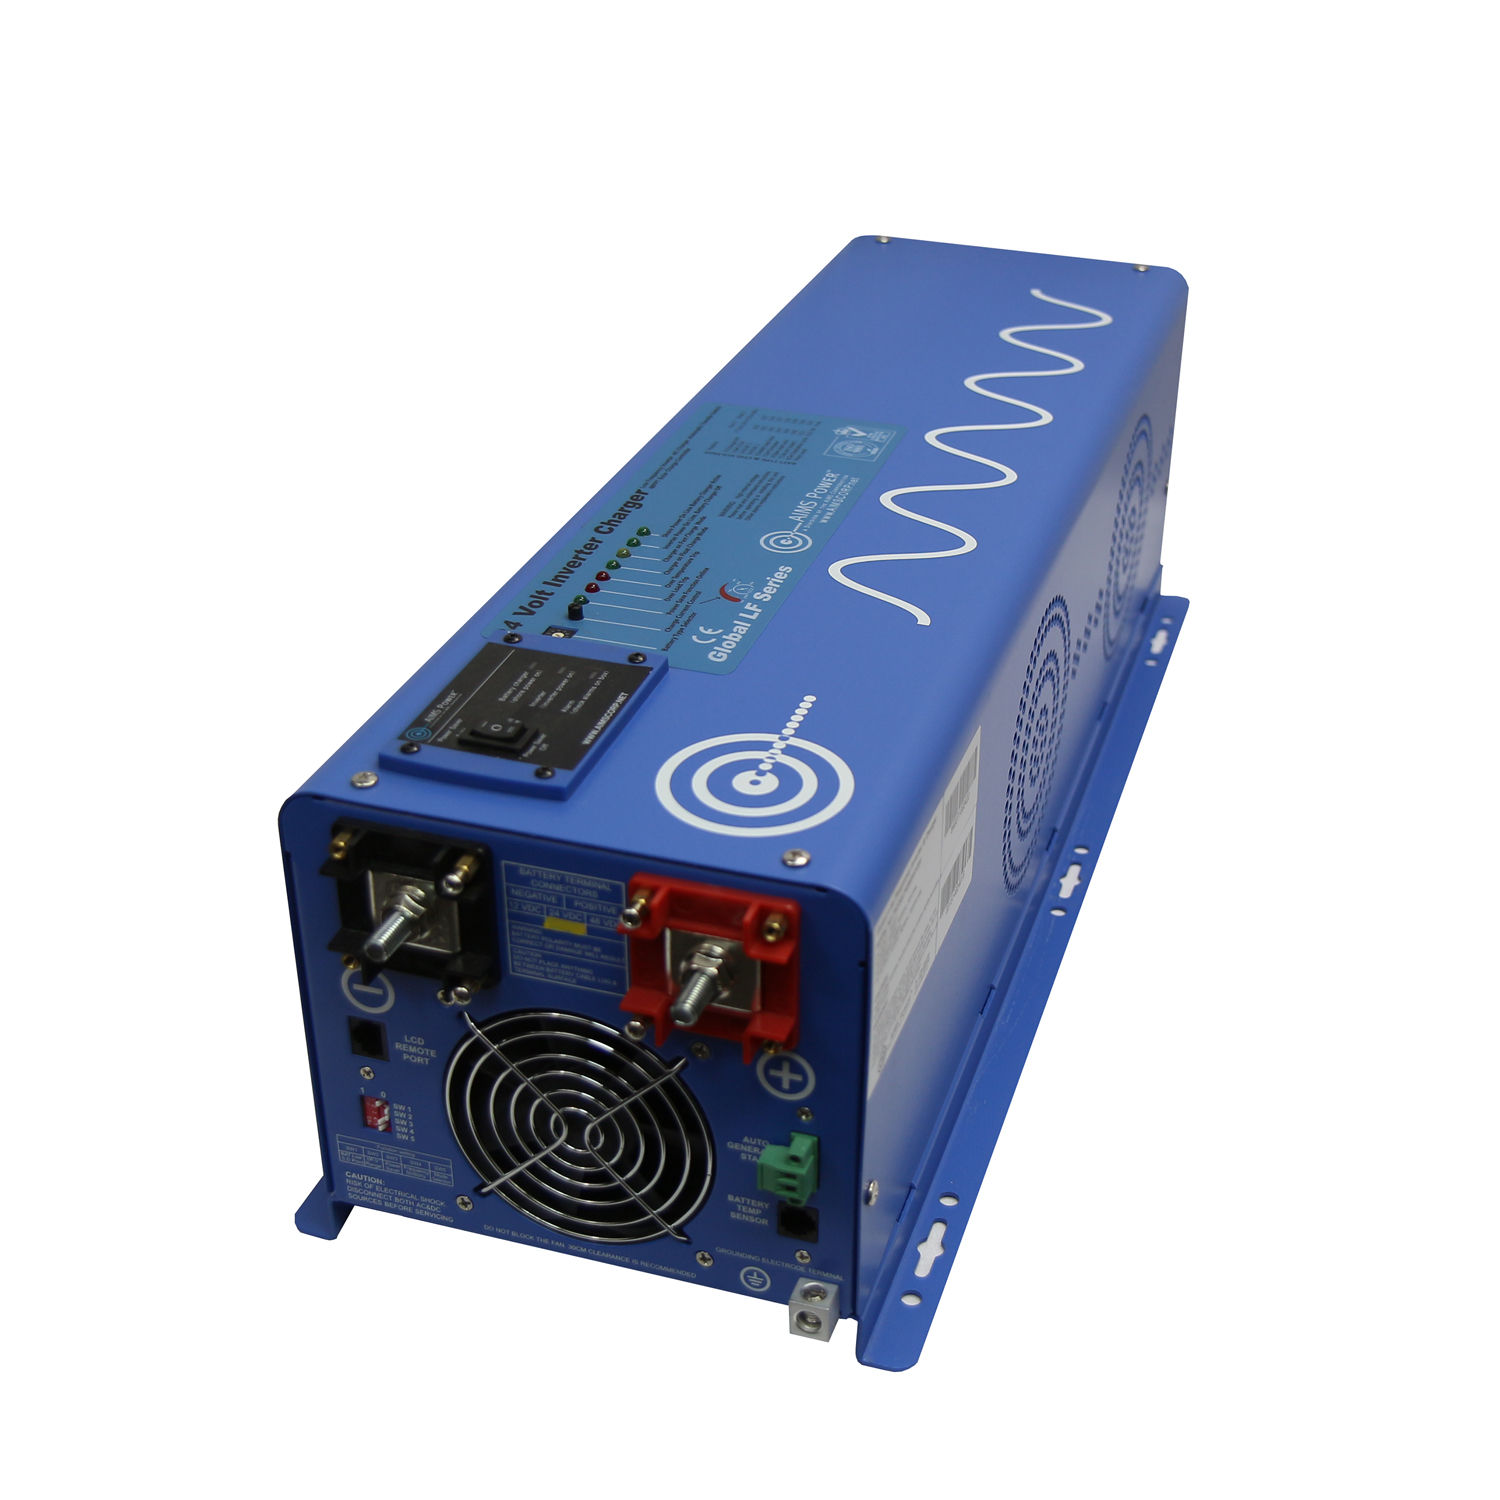 6000 Watt Pure Sine Inverter Charger 48Vdc / 240Vac Input & 120/240Vac Split Phase Output - Out of Stock